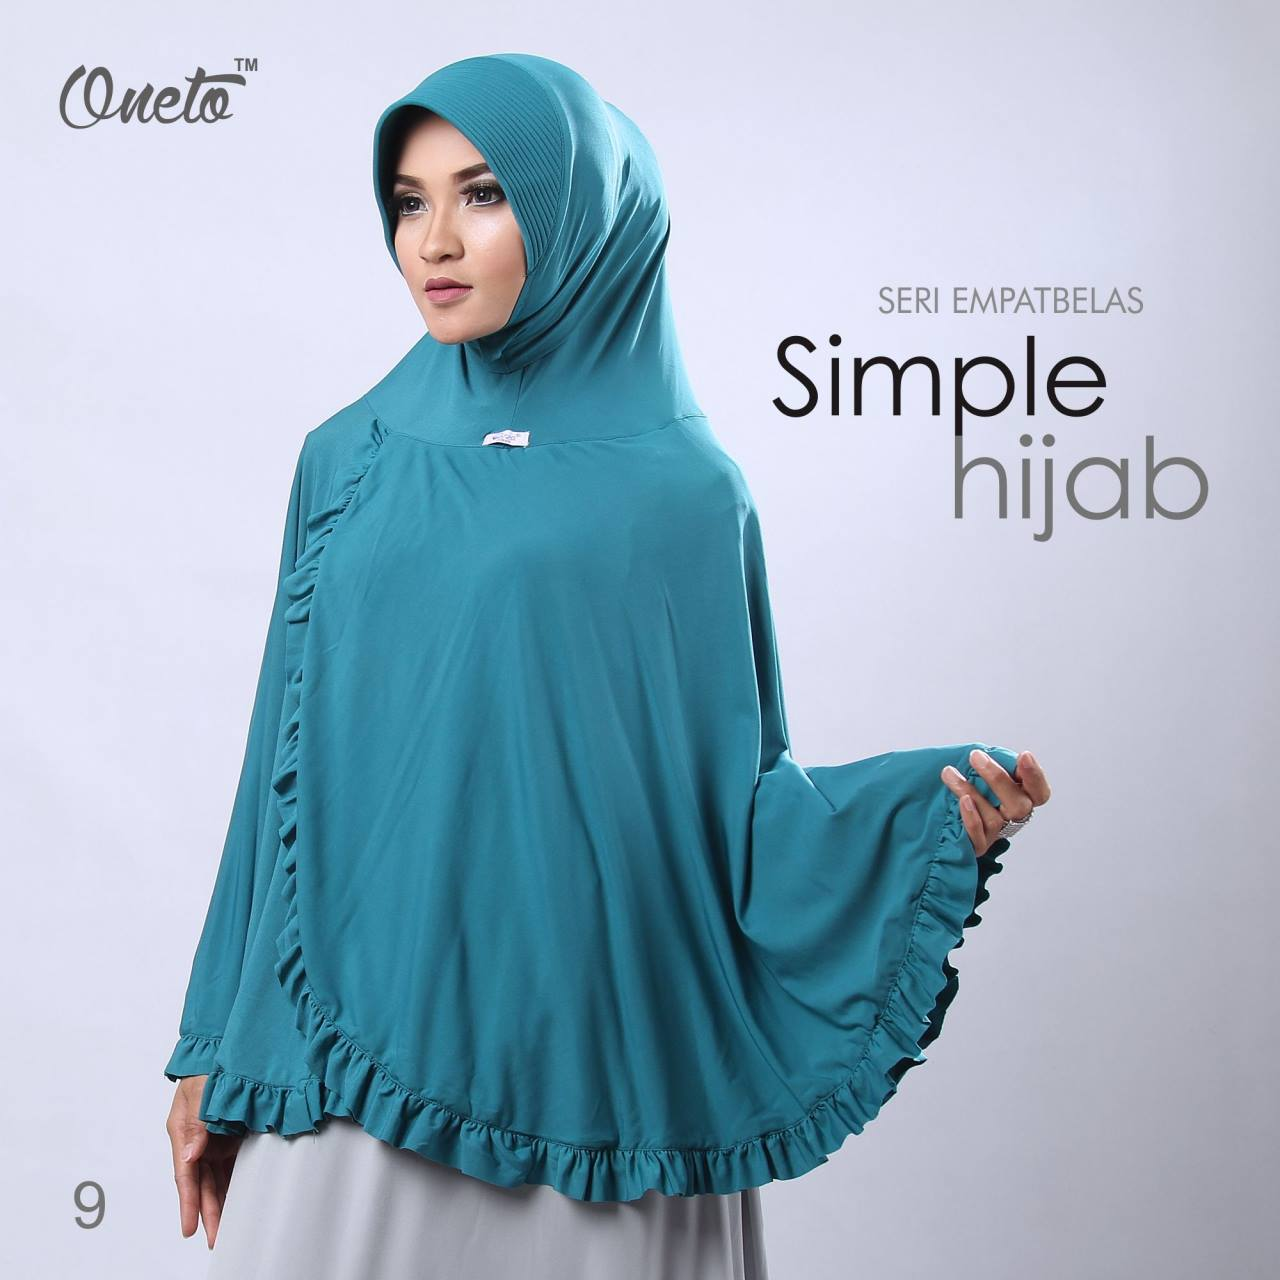 oneto jilbab simple hijab 14 tosca